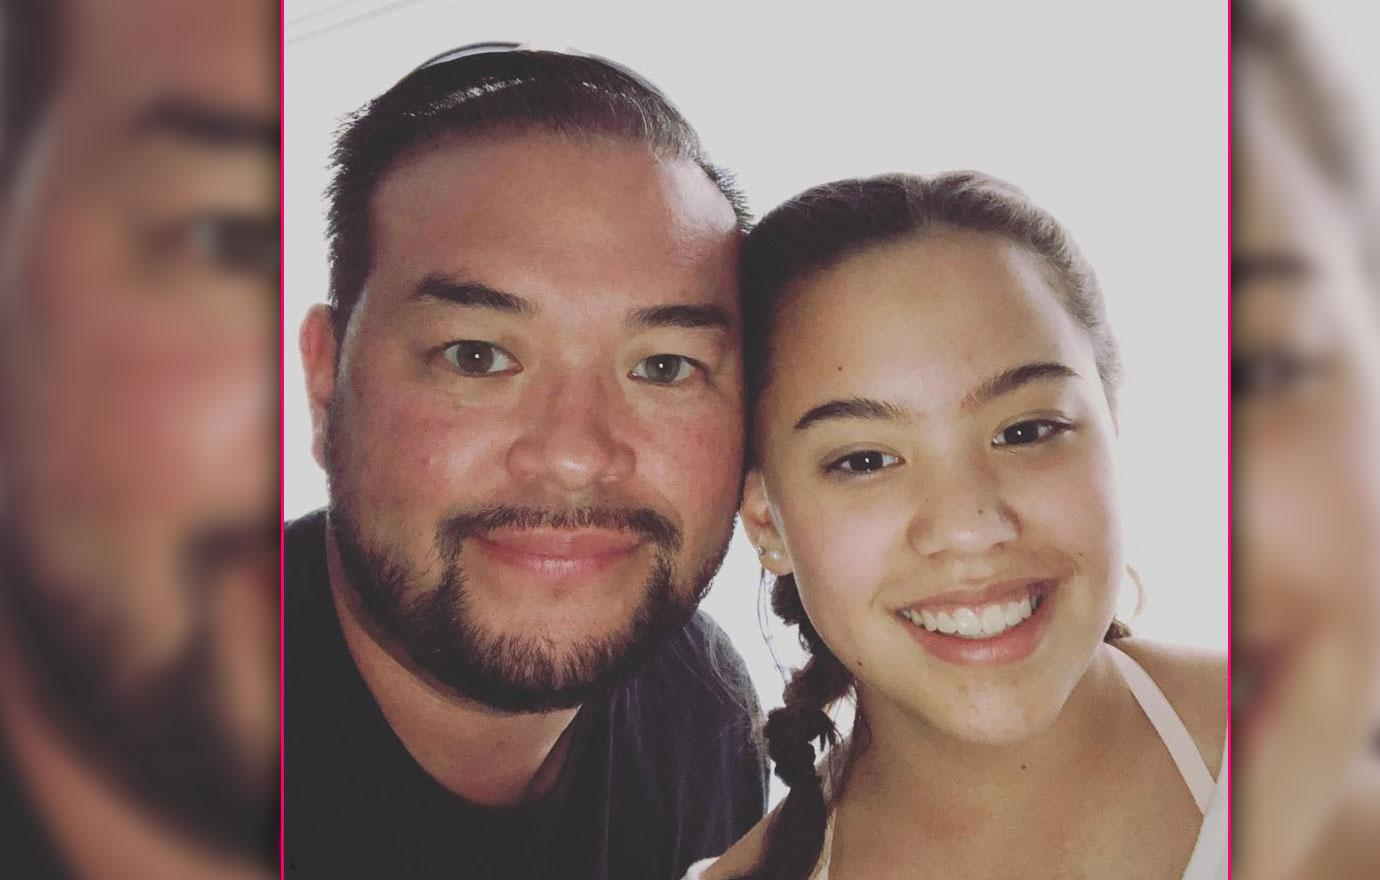 Jon Gosselin Shares New Photo With Daughter Hannah School's Out